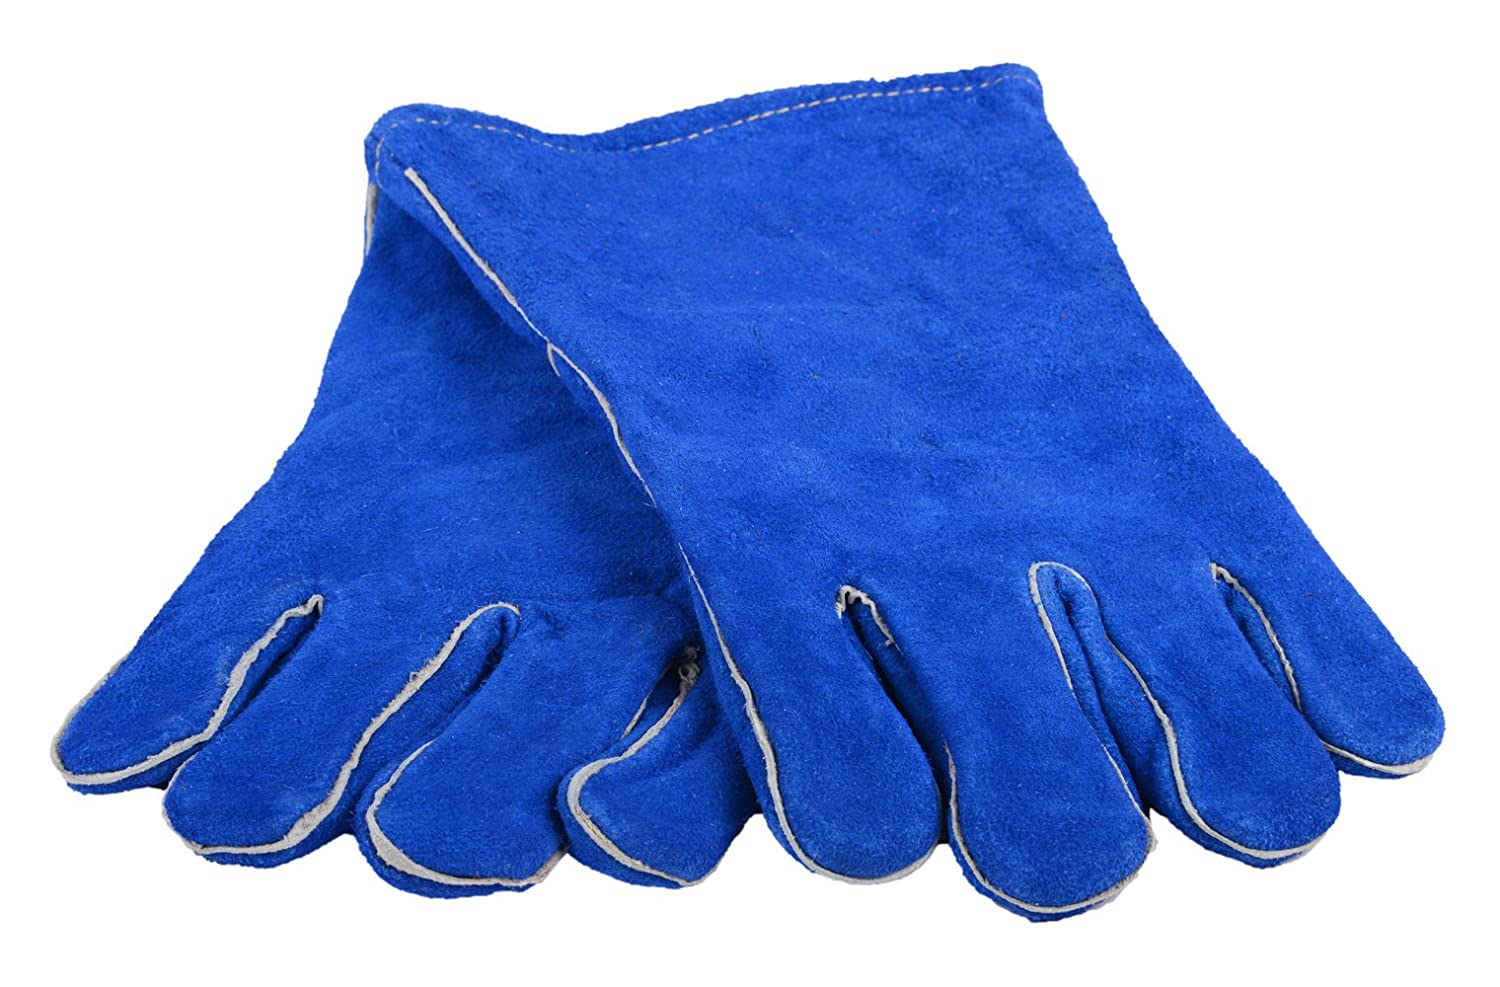 Forney 53422 Blue Leather Heavy Duty Mens Welding Gloves with Reinforced Thumb Large